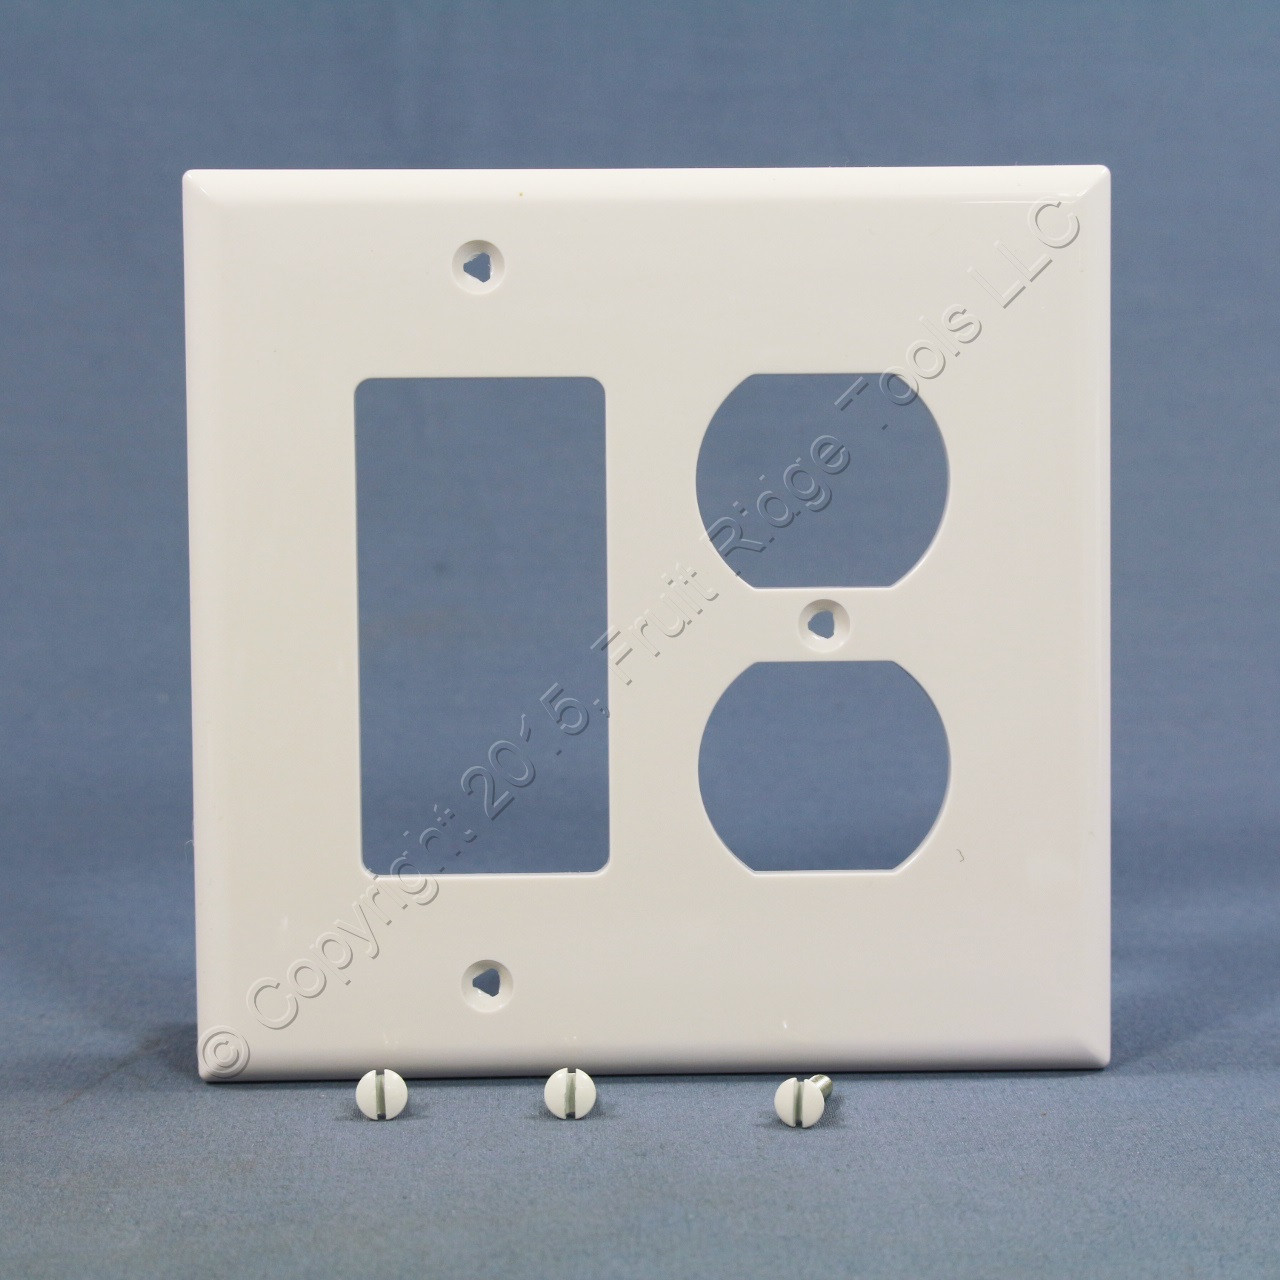 Metal Electrical Outlet Covers Oversized Outlet Covers: Shop Cooper White UNBREAKABLE 2-Gang Duplex Outlet Cover